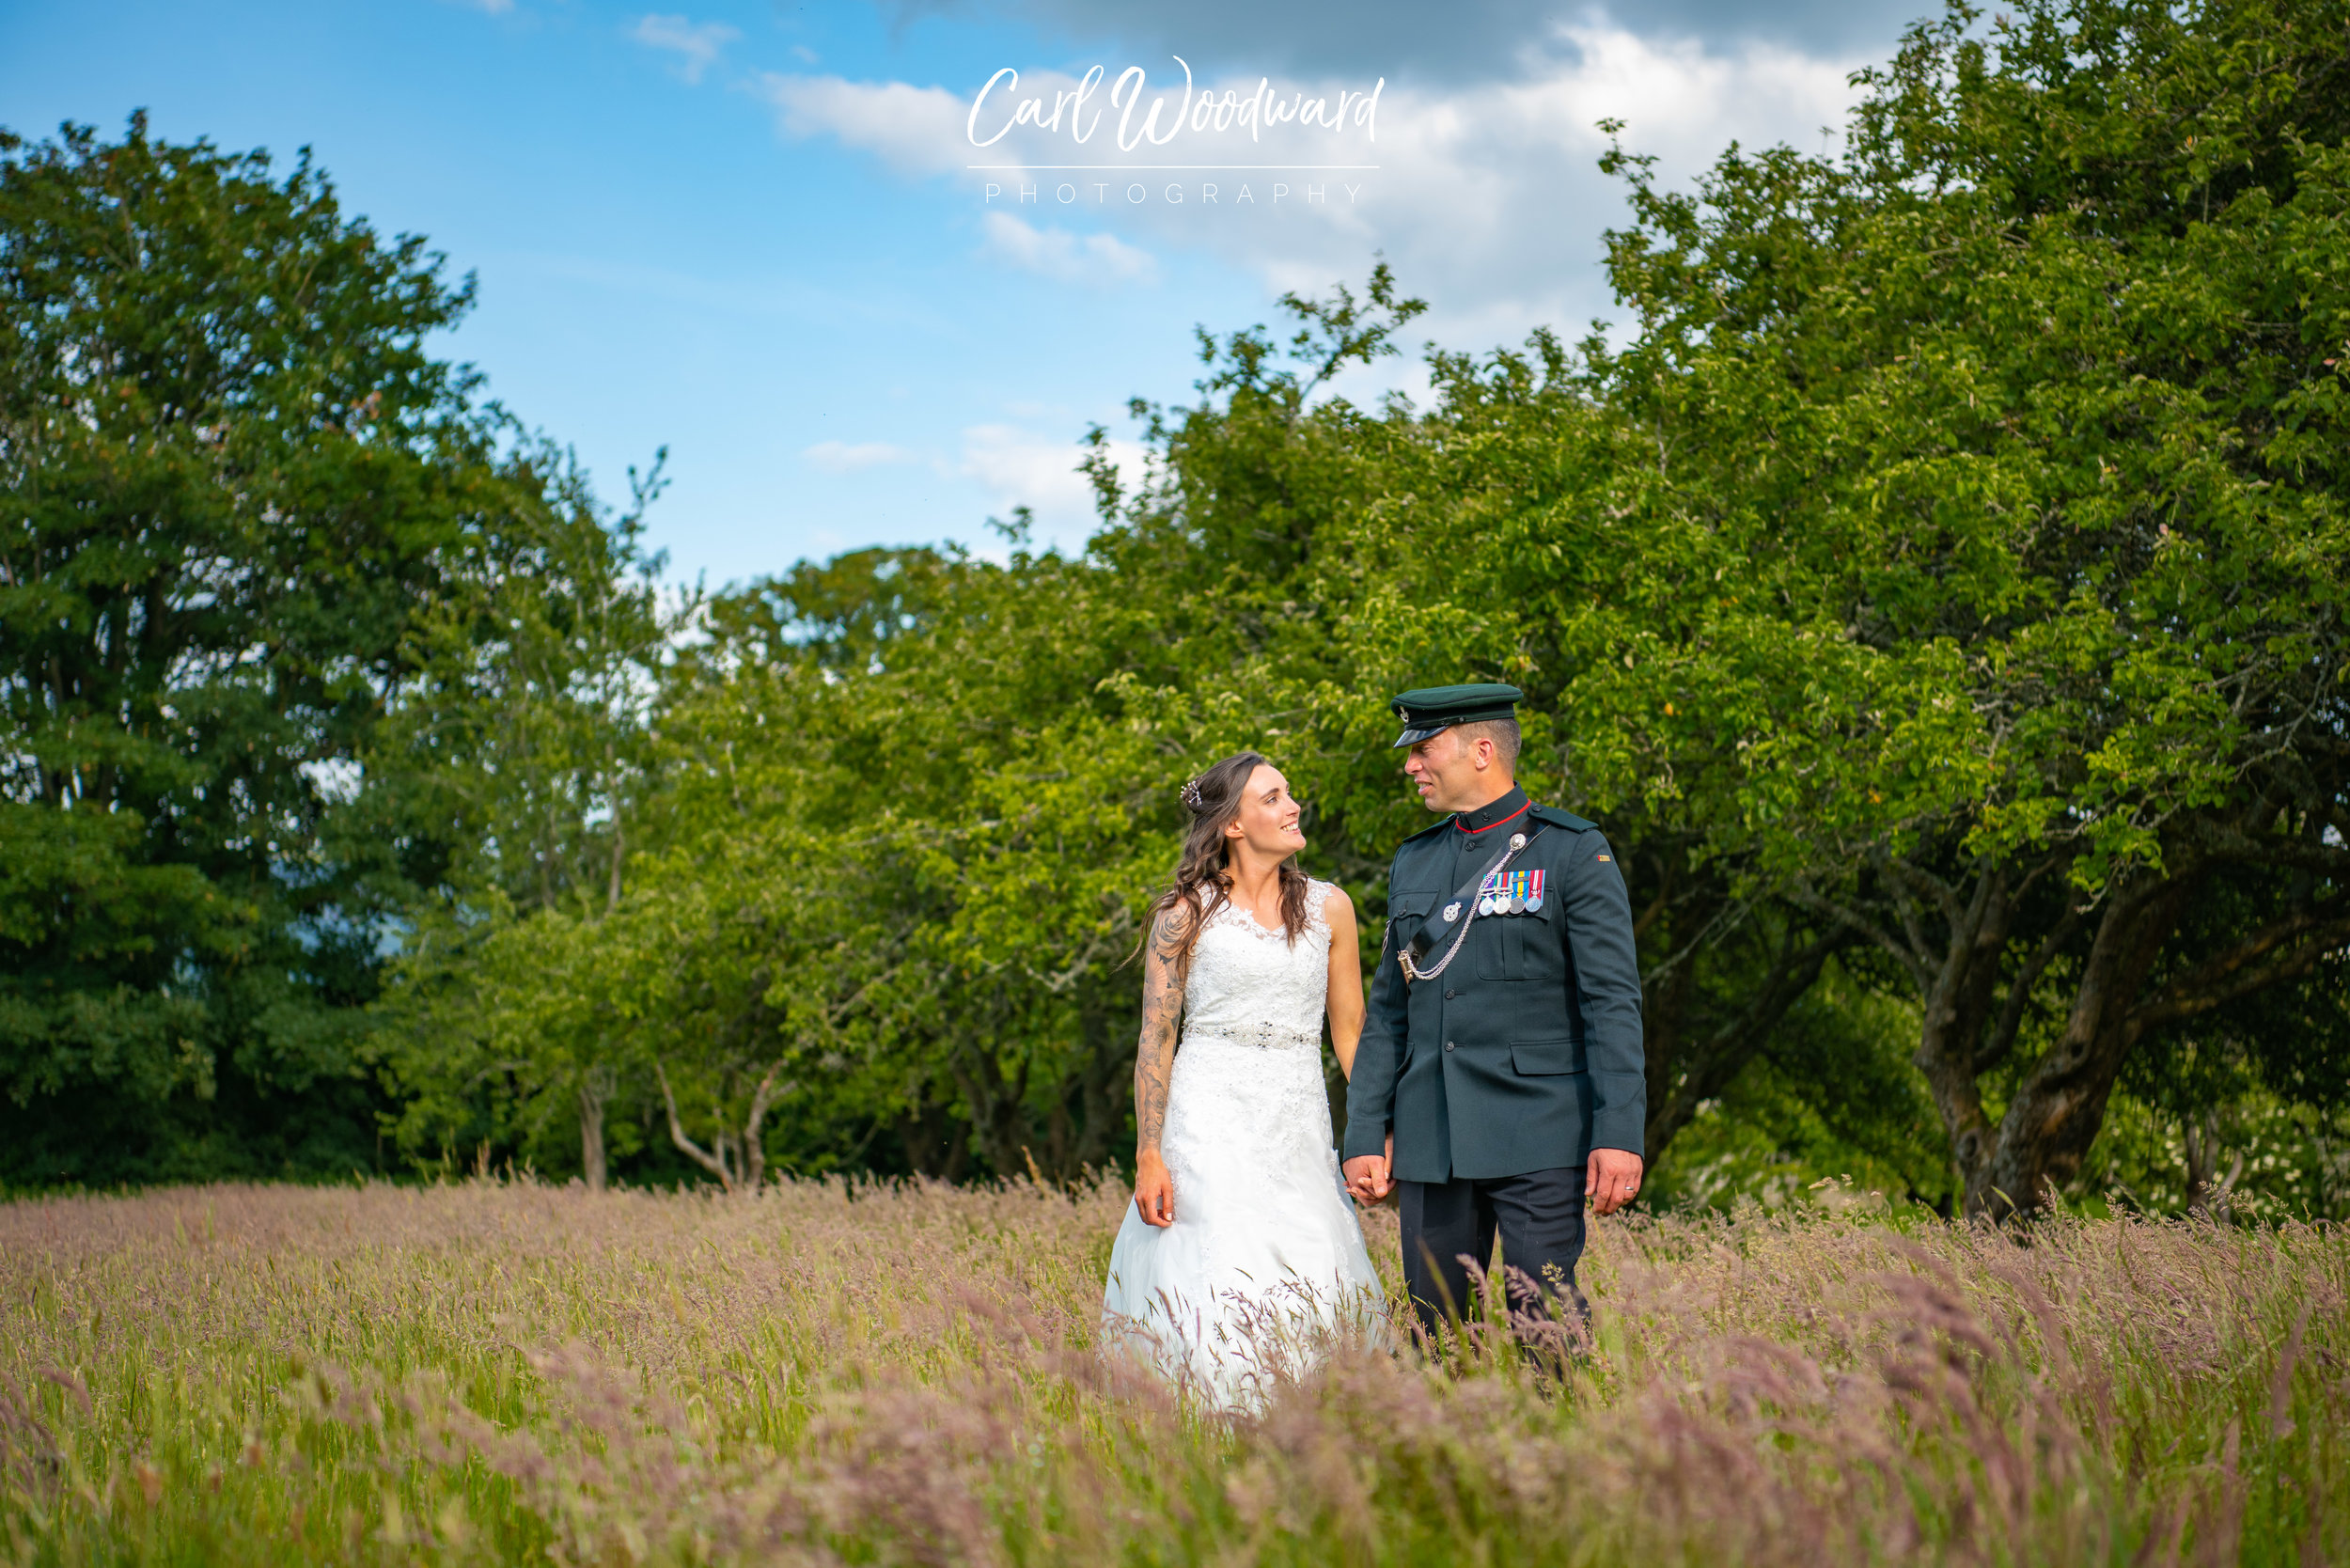 012-The-Old-Rectory-Hotel-Wedding-Photography-Cardiff-Wedding-Photography.jpg